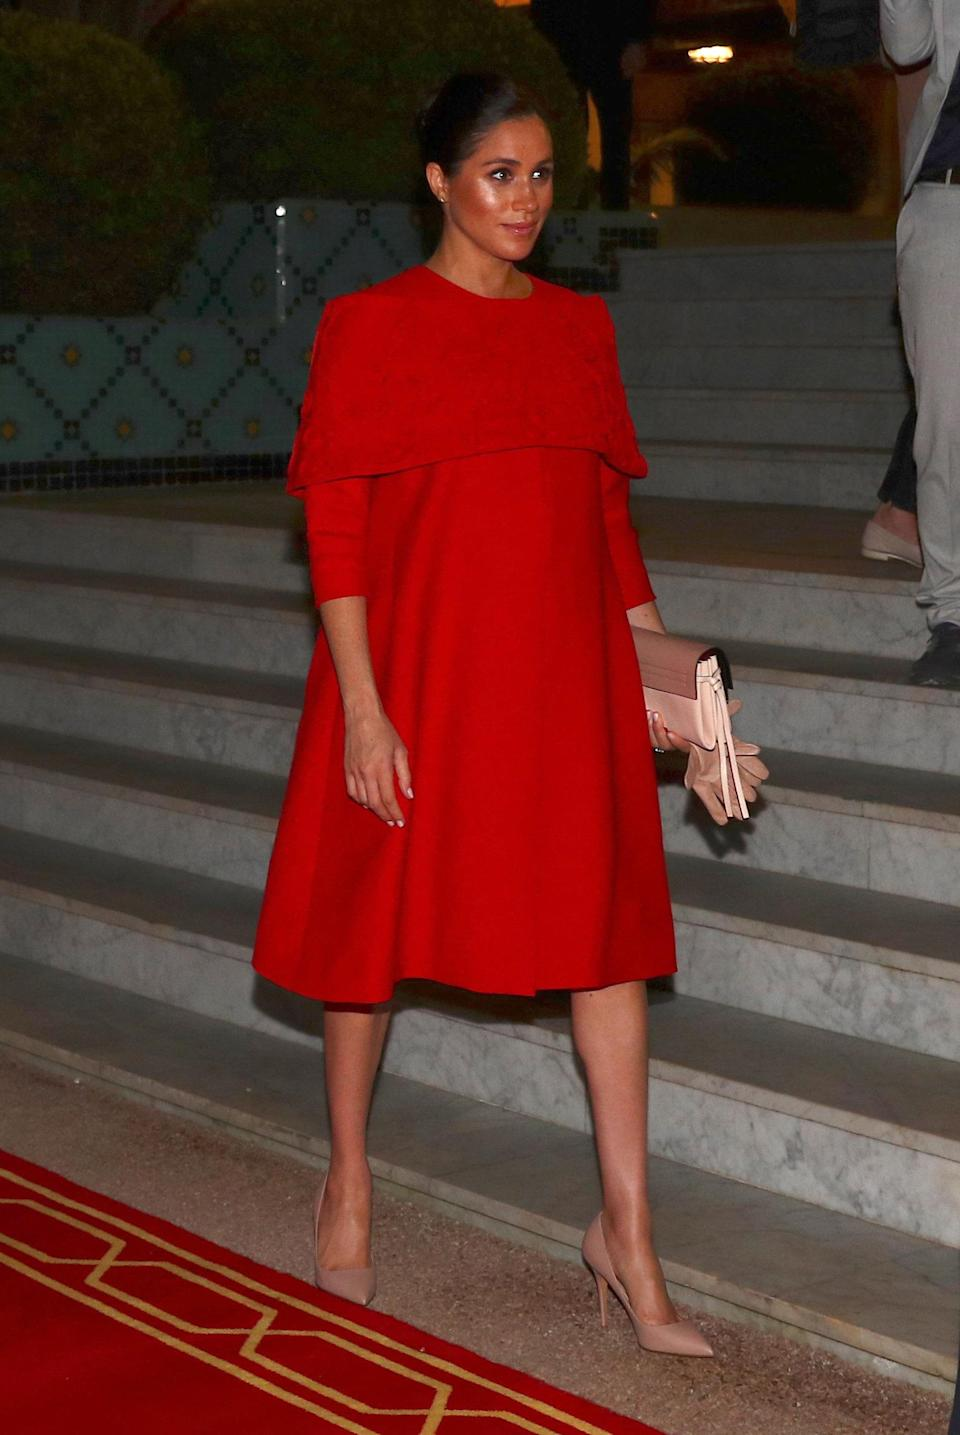 """<p>The Duke and Duchess of Sussex arrived in Casablanca, Morocco on Saturday evening. Meghan paid tribute to the country's flag with her red caped Valentino dress and the brand's <a rel=""""nofollow noopener"""" href=""""https://www.valentino.com/en-gb/cross-body-bags_cod272216333676817.html#dept="""" target=""""_blank"""" data-ylk=""""slk:small v-ring crossbody bag."""" class=""""link rapid-noclick-resp"""">small v-ring crossbody bag.</a> Nude pumps completed her arrival look. [Photo: PA] </p>"""